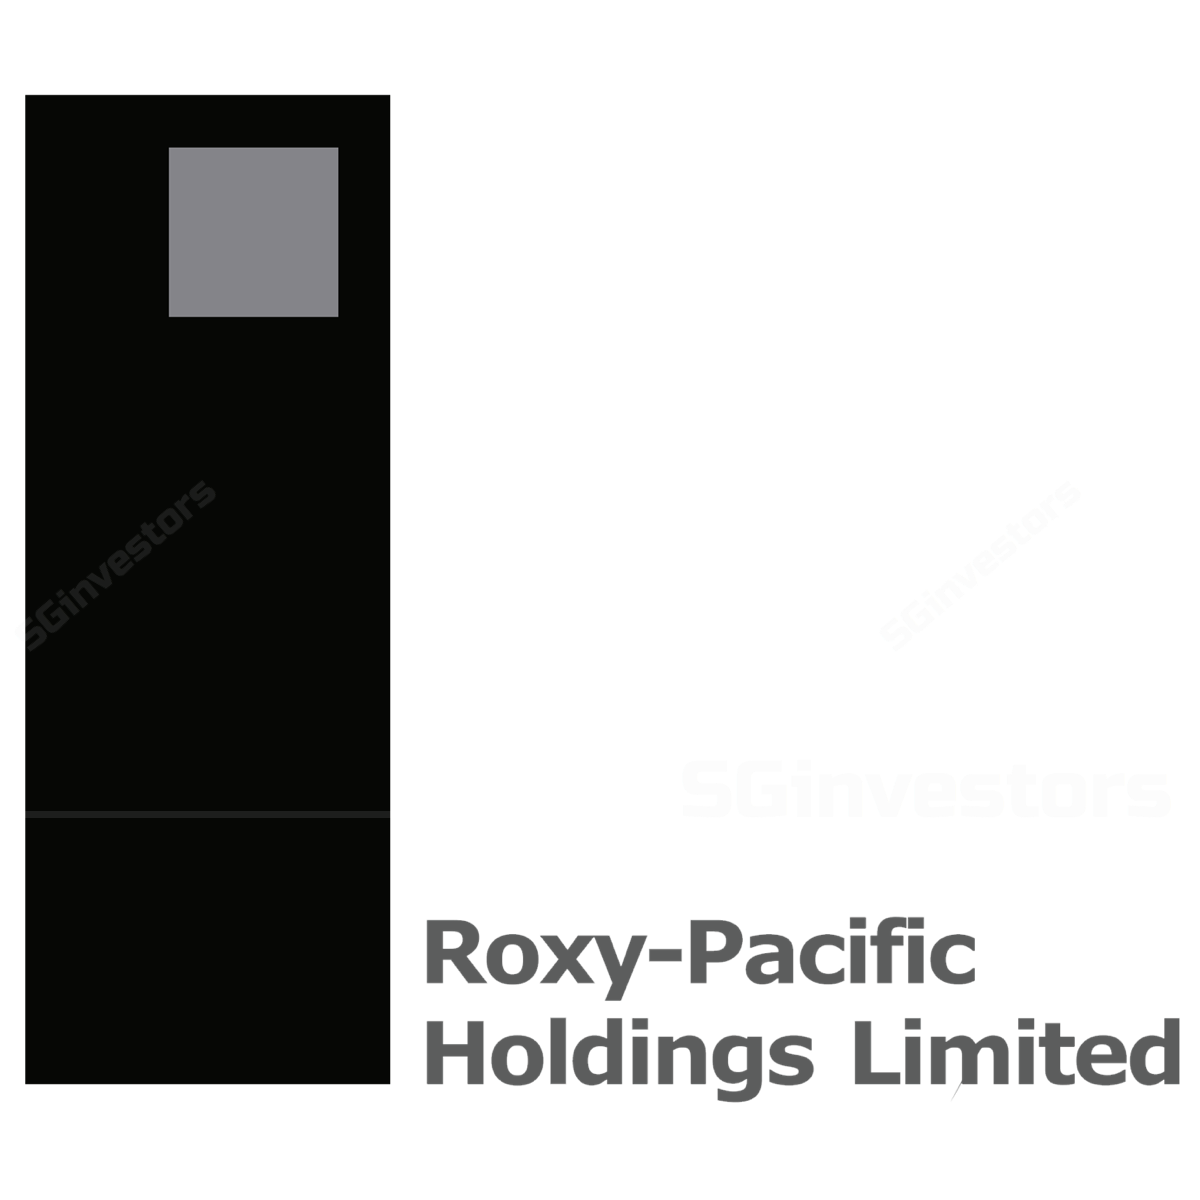 Roxy Pacific Holdings Ltd - CIMB Research 2017-11-03: Reinvesting Into Singapore, Building Recurrent Base